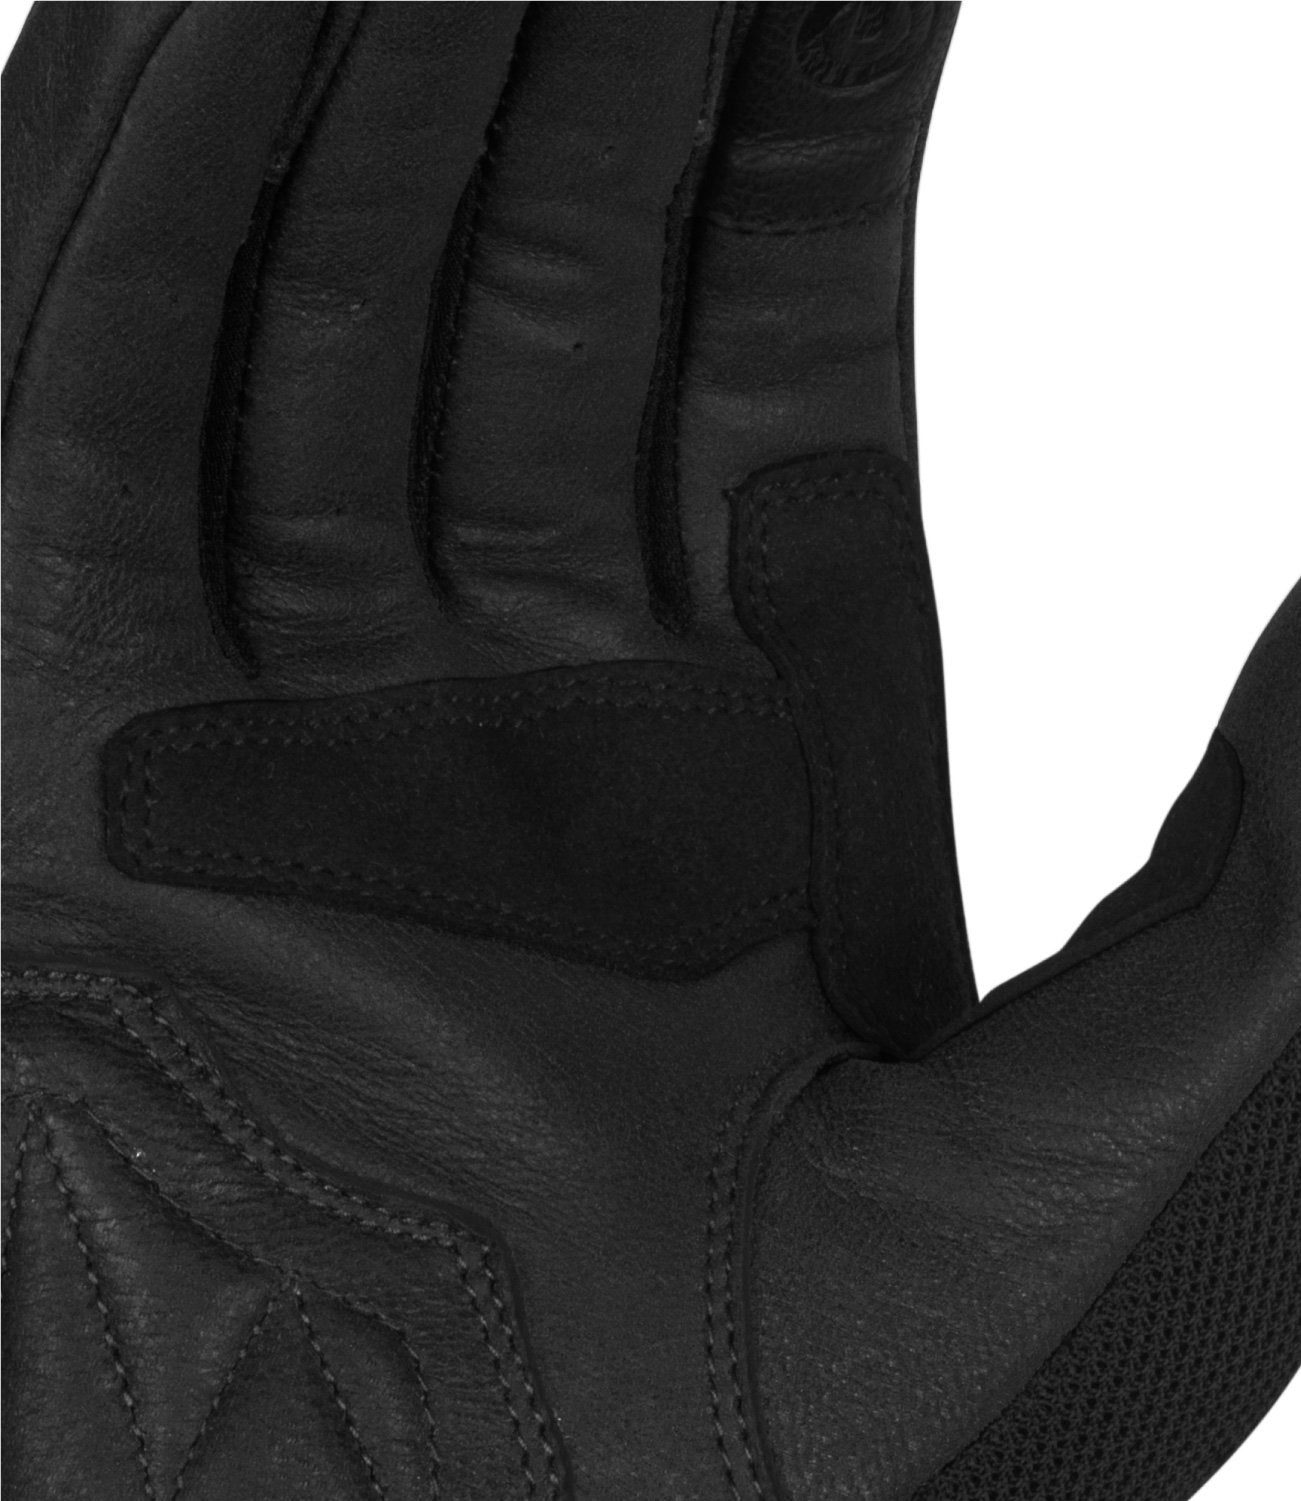 Rynox Urban Gloves Black 6